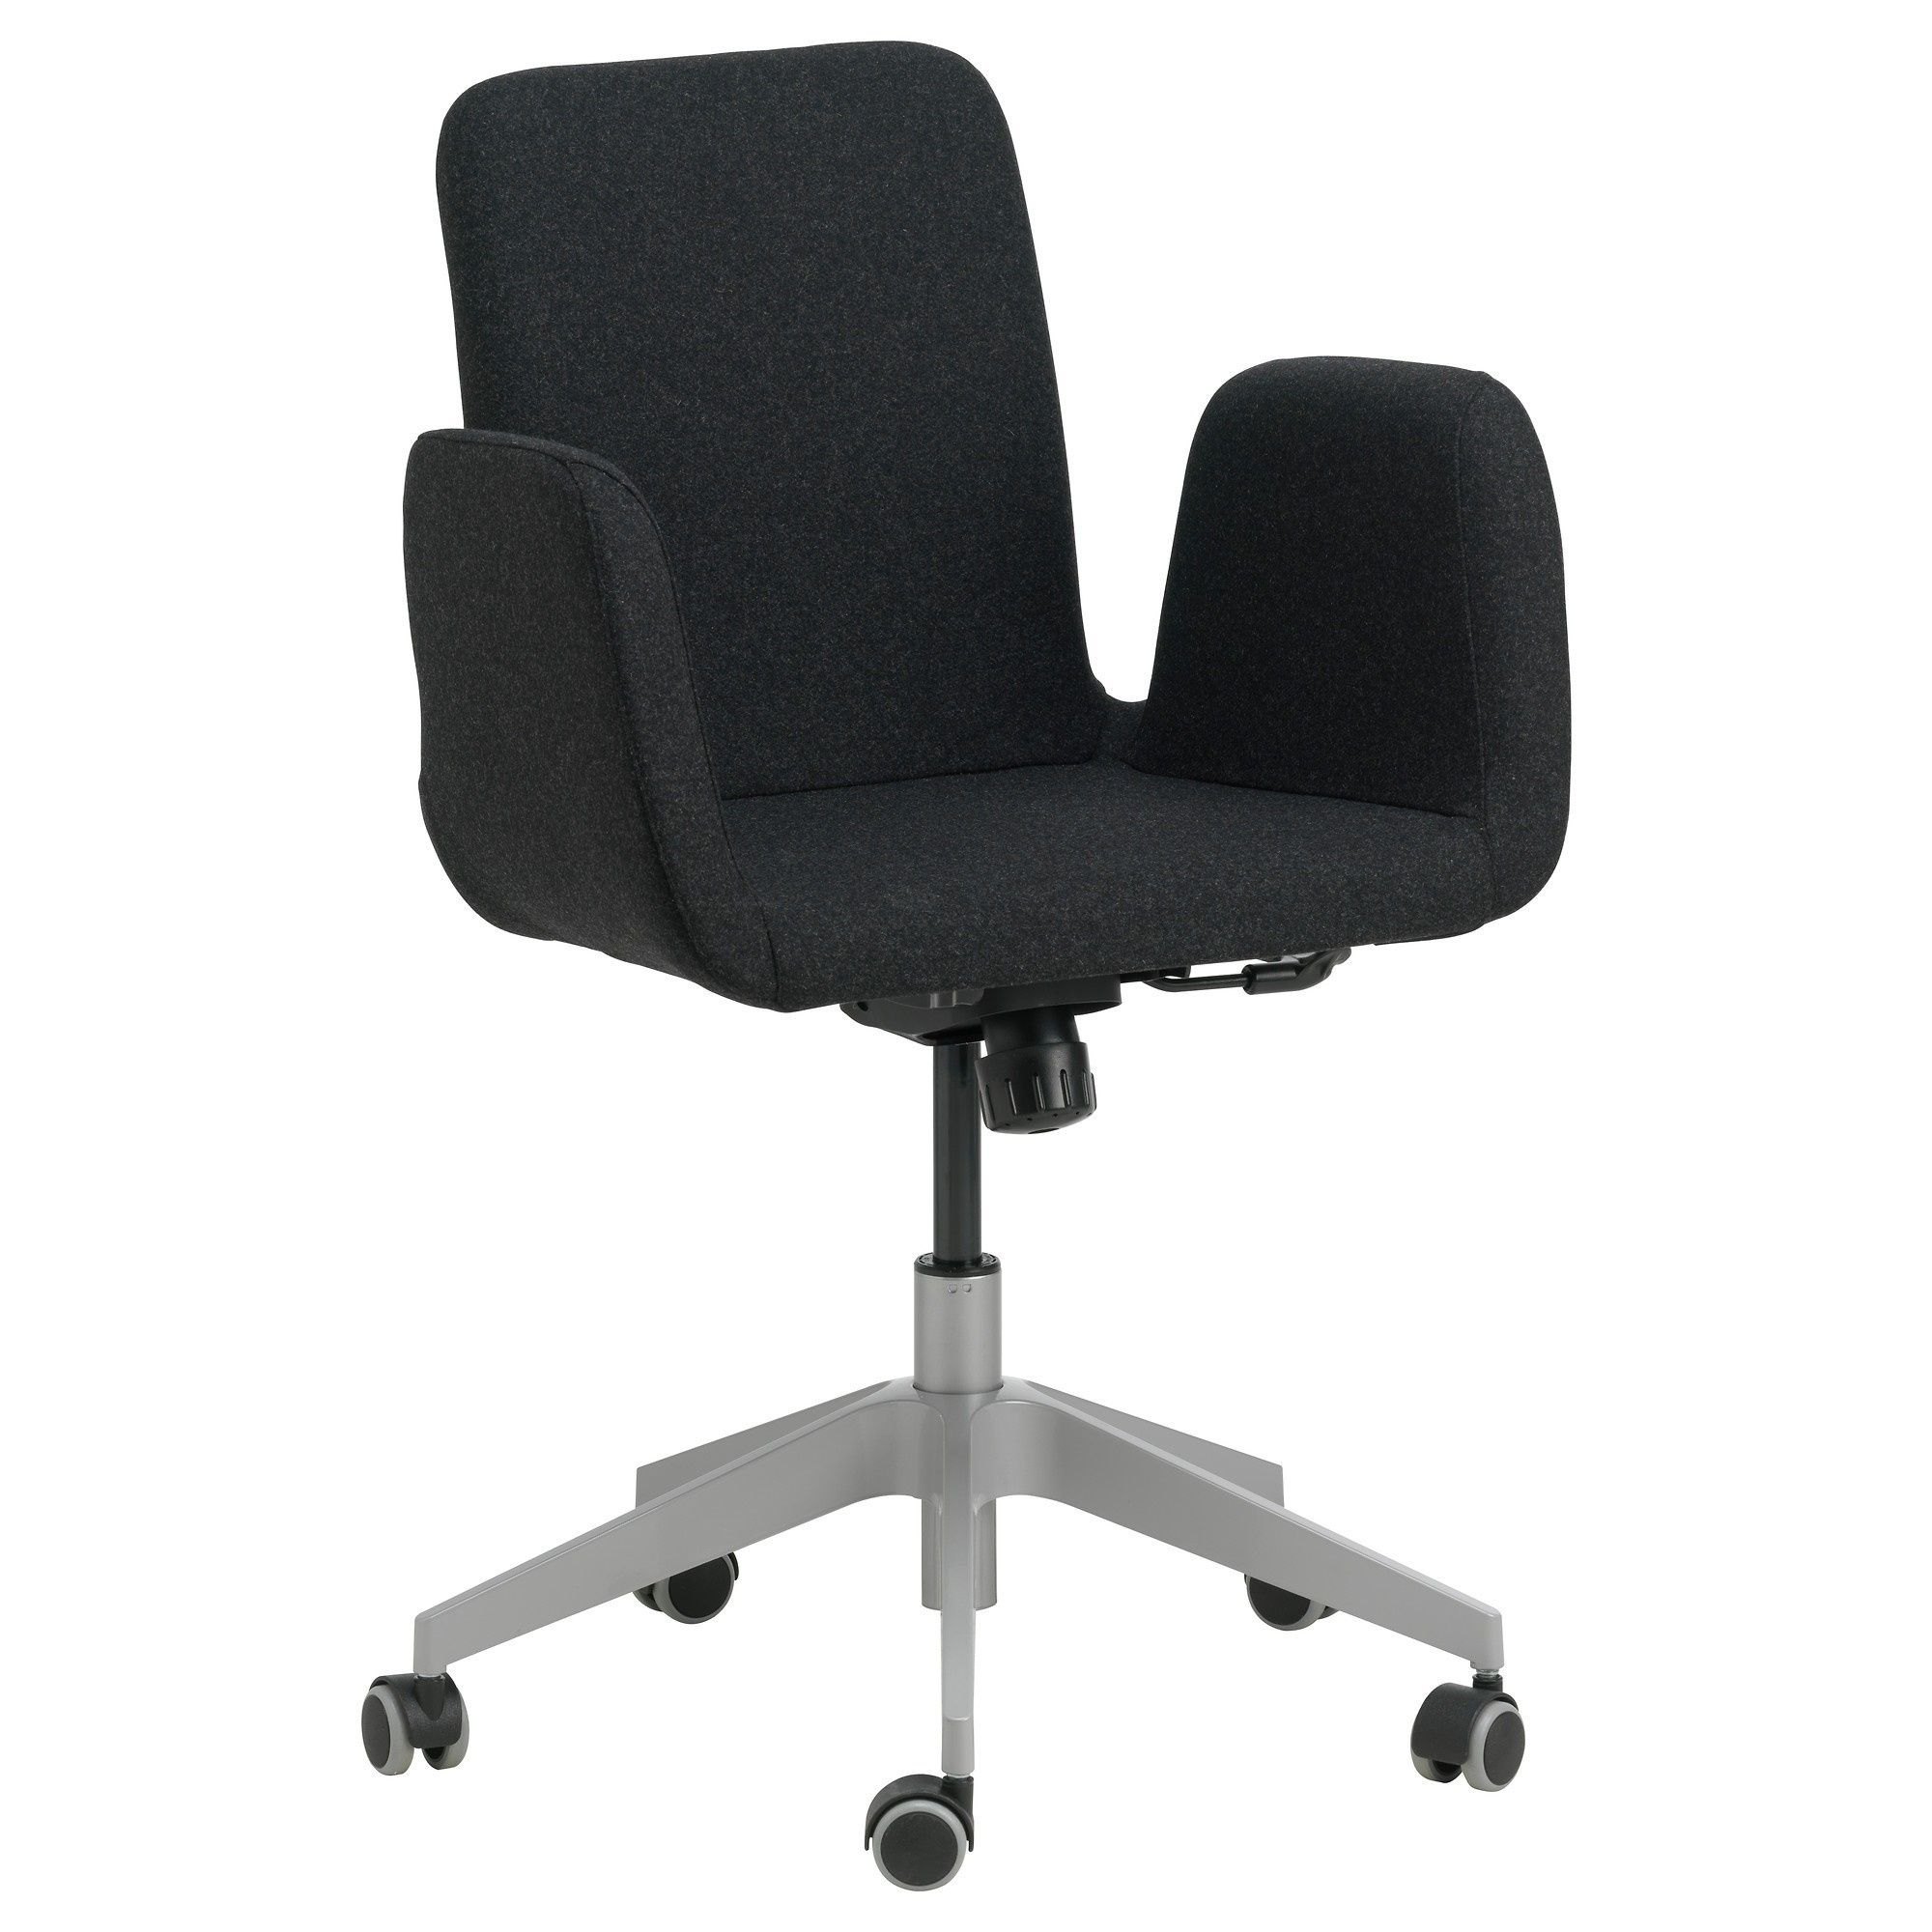 13 Simpliste Rehausseur Chaise Ikea Images Ikea Desk Chair Ikea Office Chair Comfortable Office Chair